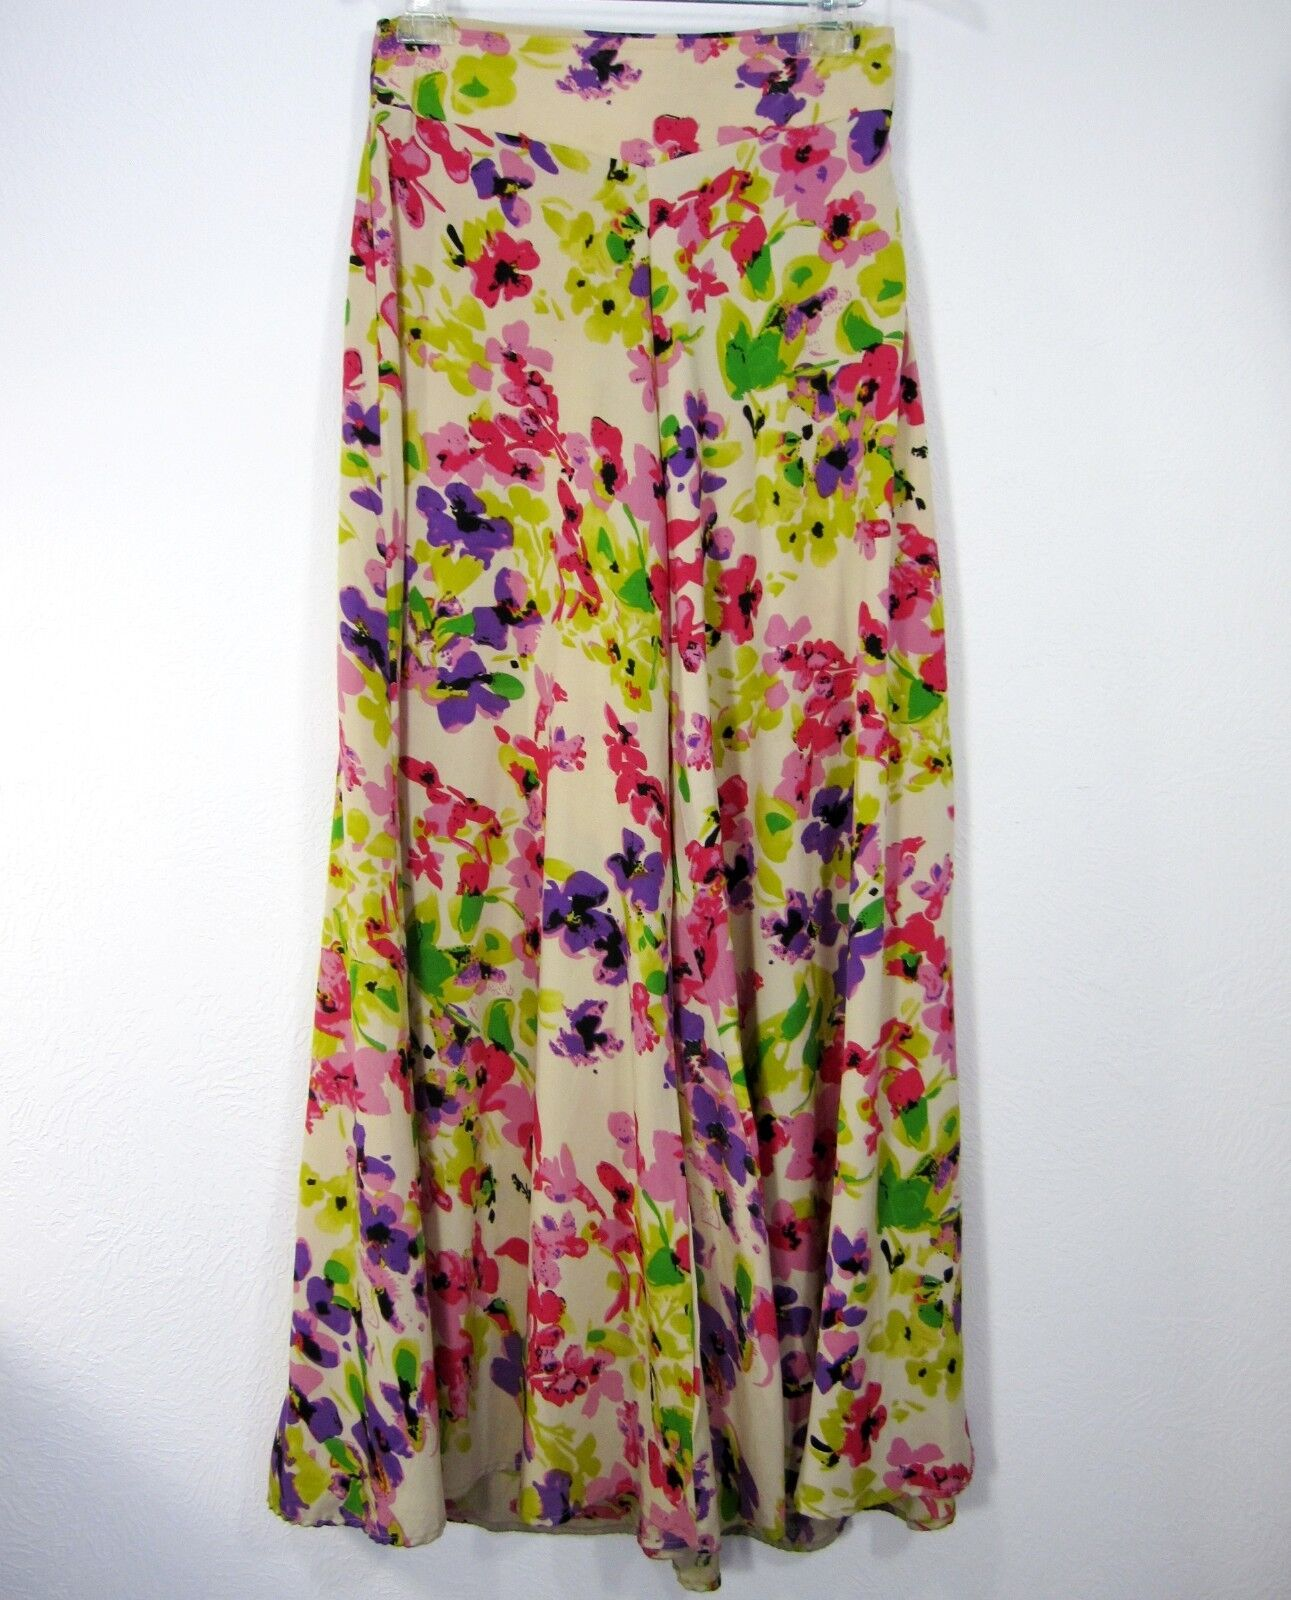 BOOHOO HIGH WAIST EXTRA WIDE PANTS SIZE 4 FLORAL RED YELLOW GREEN blueE